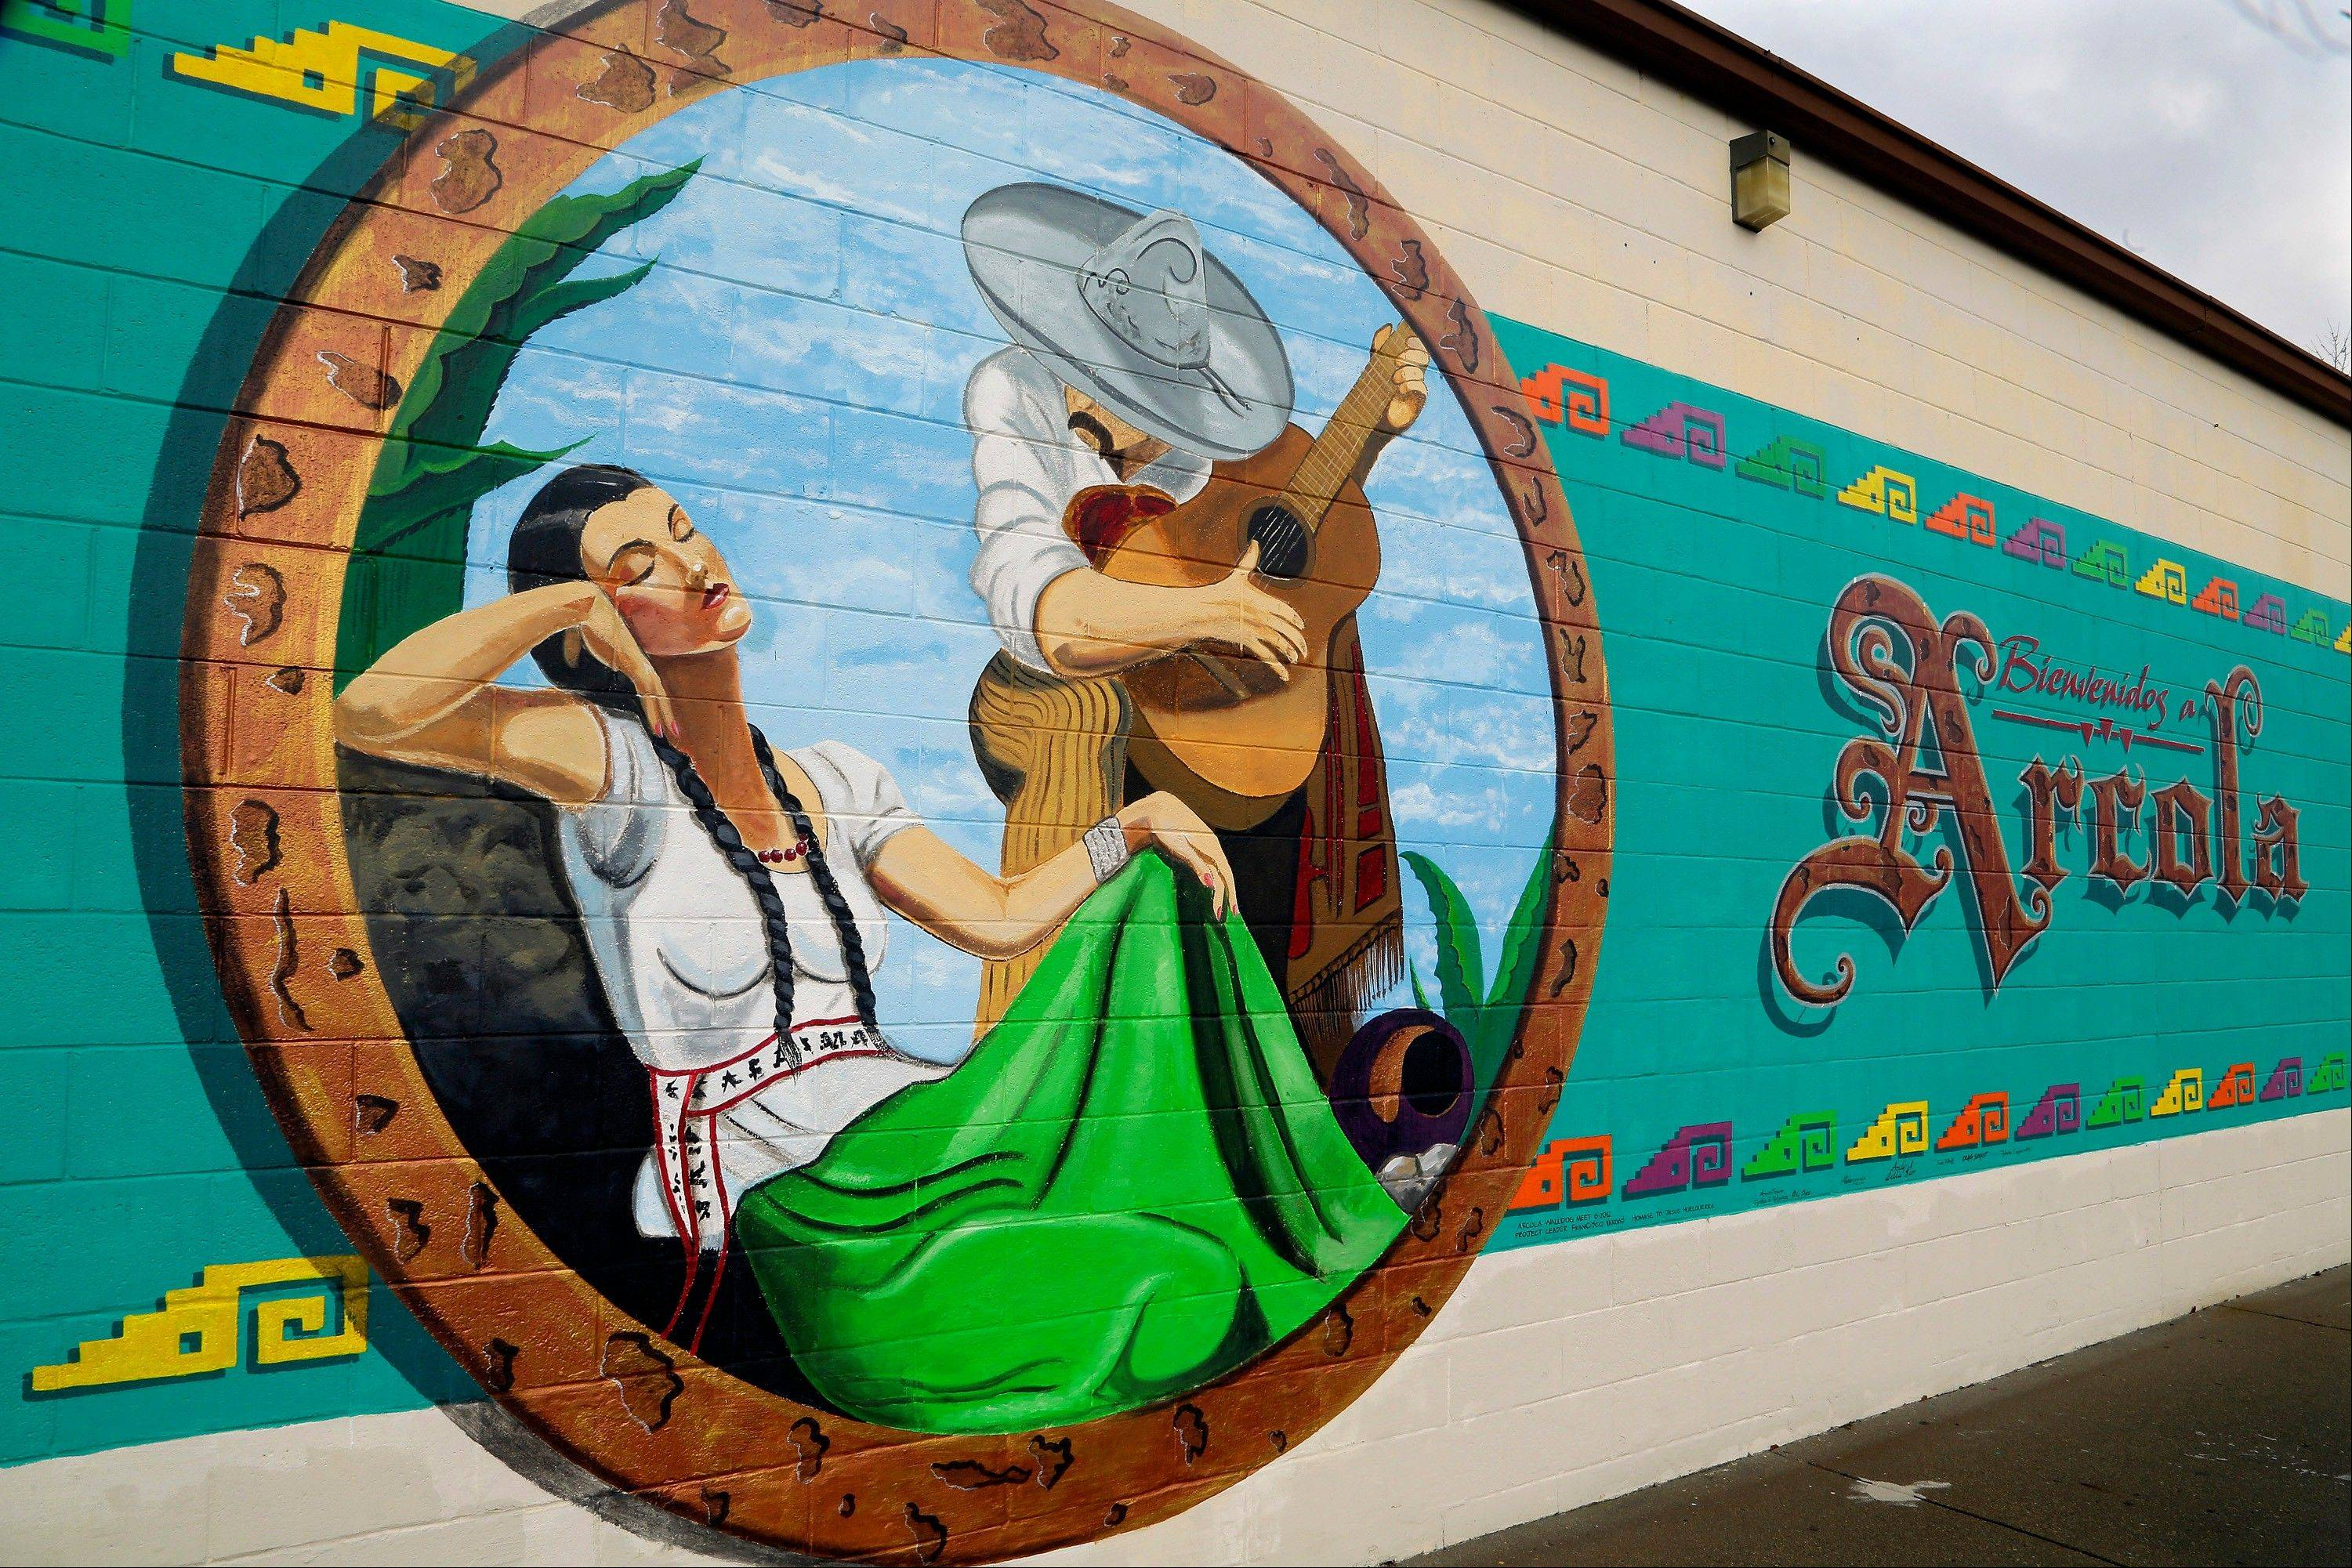 A Hispanic-themed mural is seen on the side of a building in Arcola, Ill., in Douglas County. Douglas has both a large Hispanic population and Amish population. Hispanics in the U.S. are more likely to be uninsured than the rest of the population _ about 31 percent lack health coverage, according to the U.S. Centers for Disease Control. Douglas is second only to Cook County in percentage of Illinoisans without health insurance.